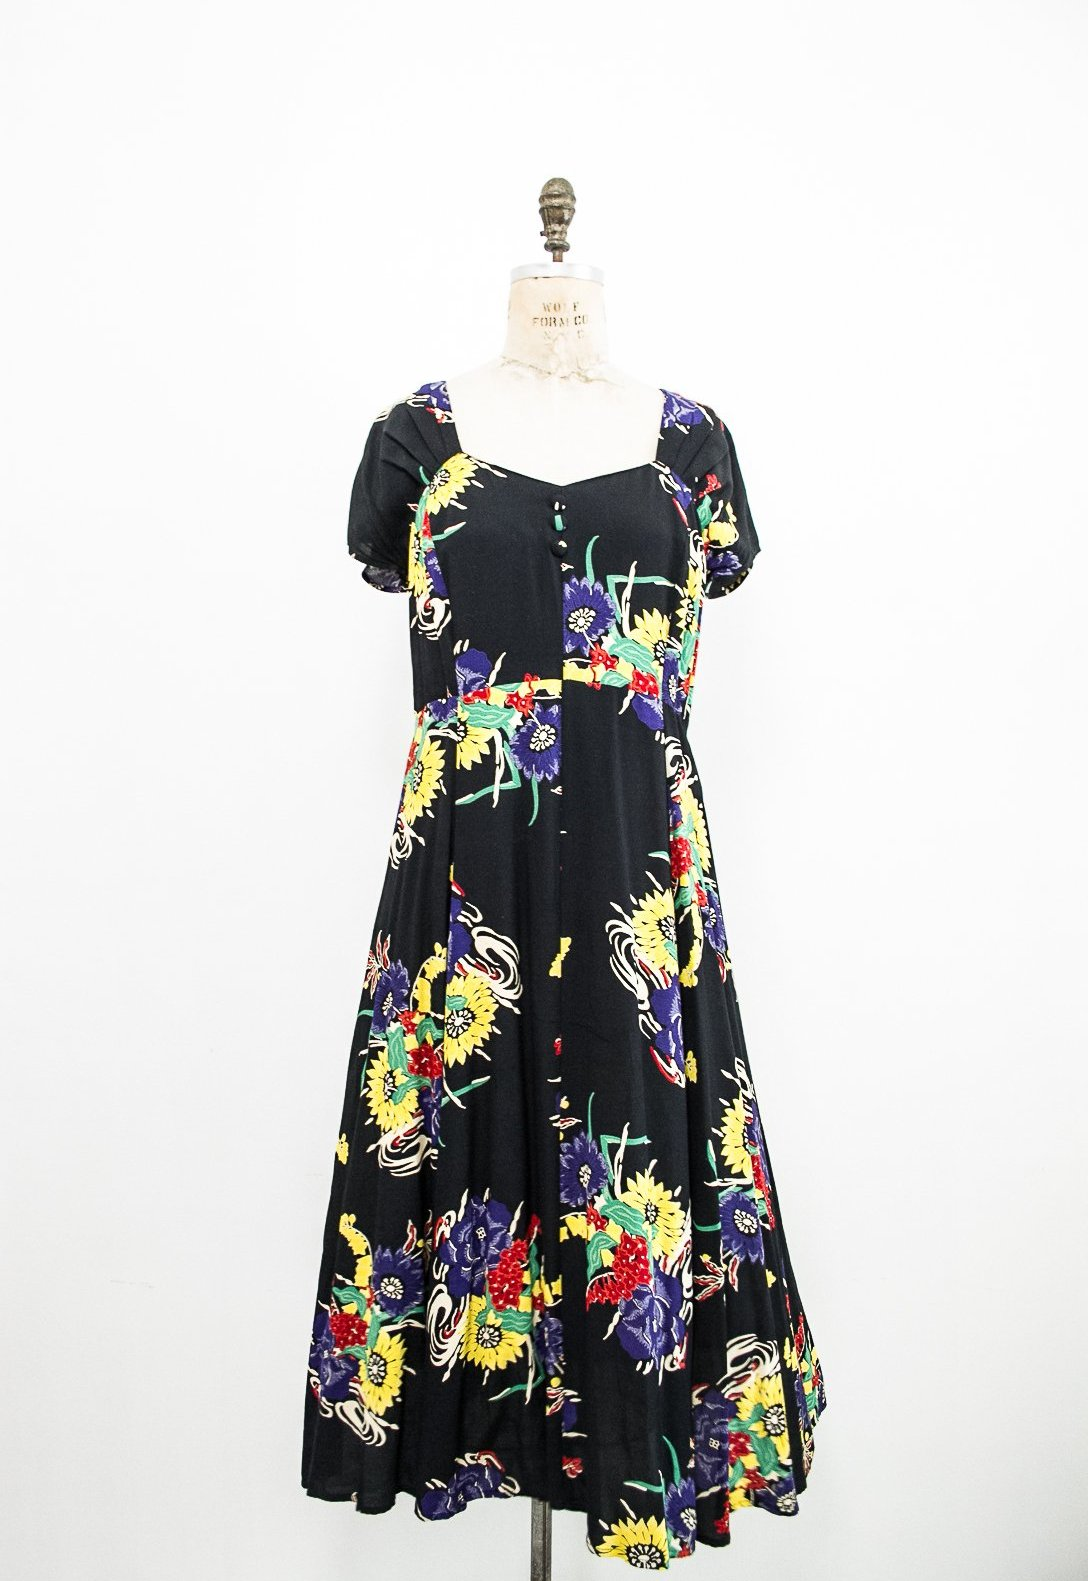 1990s Floral Rayon Cap Sleeve Dress